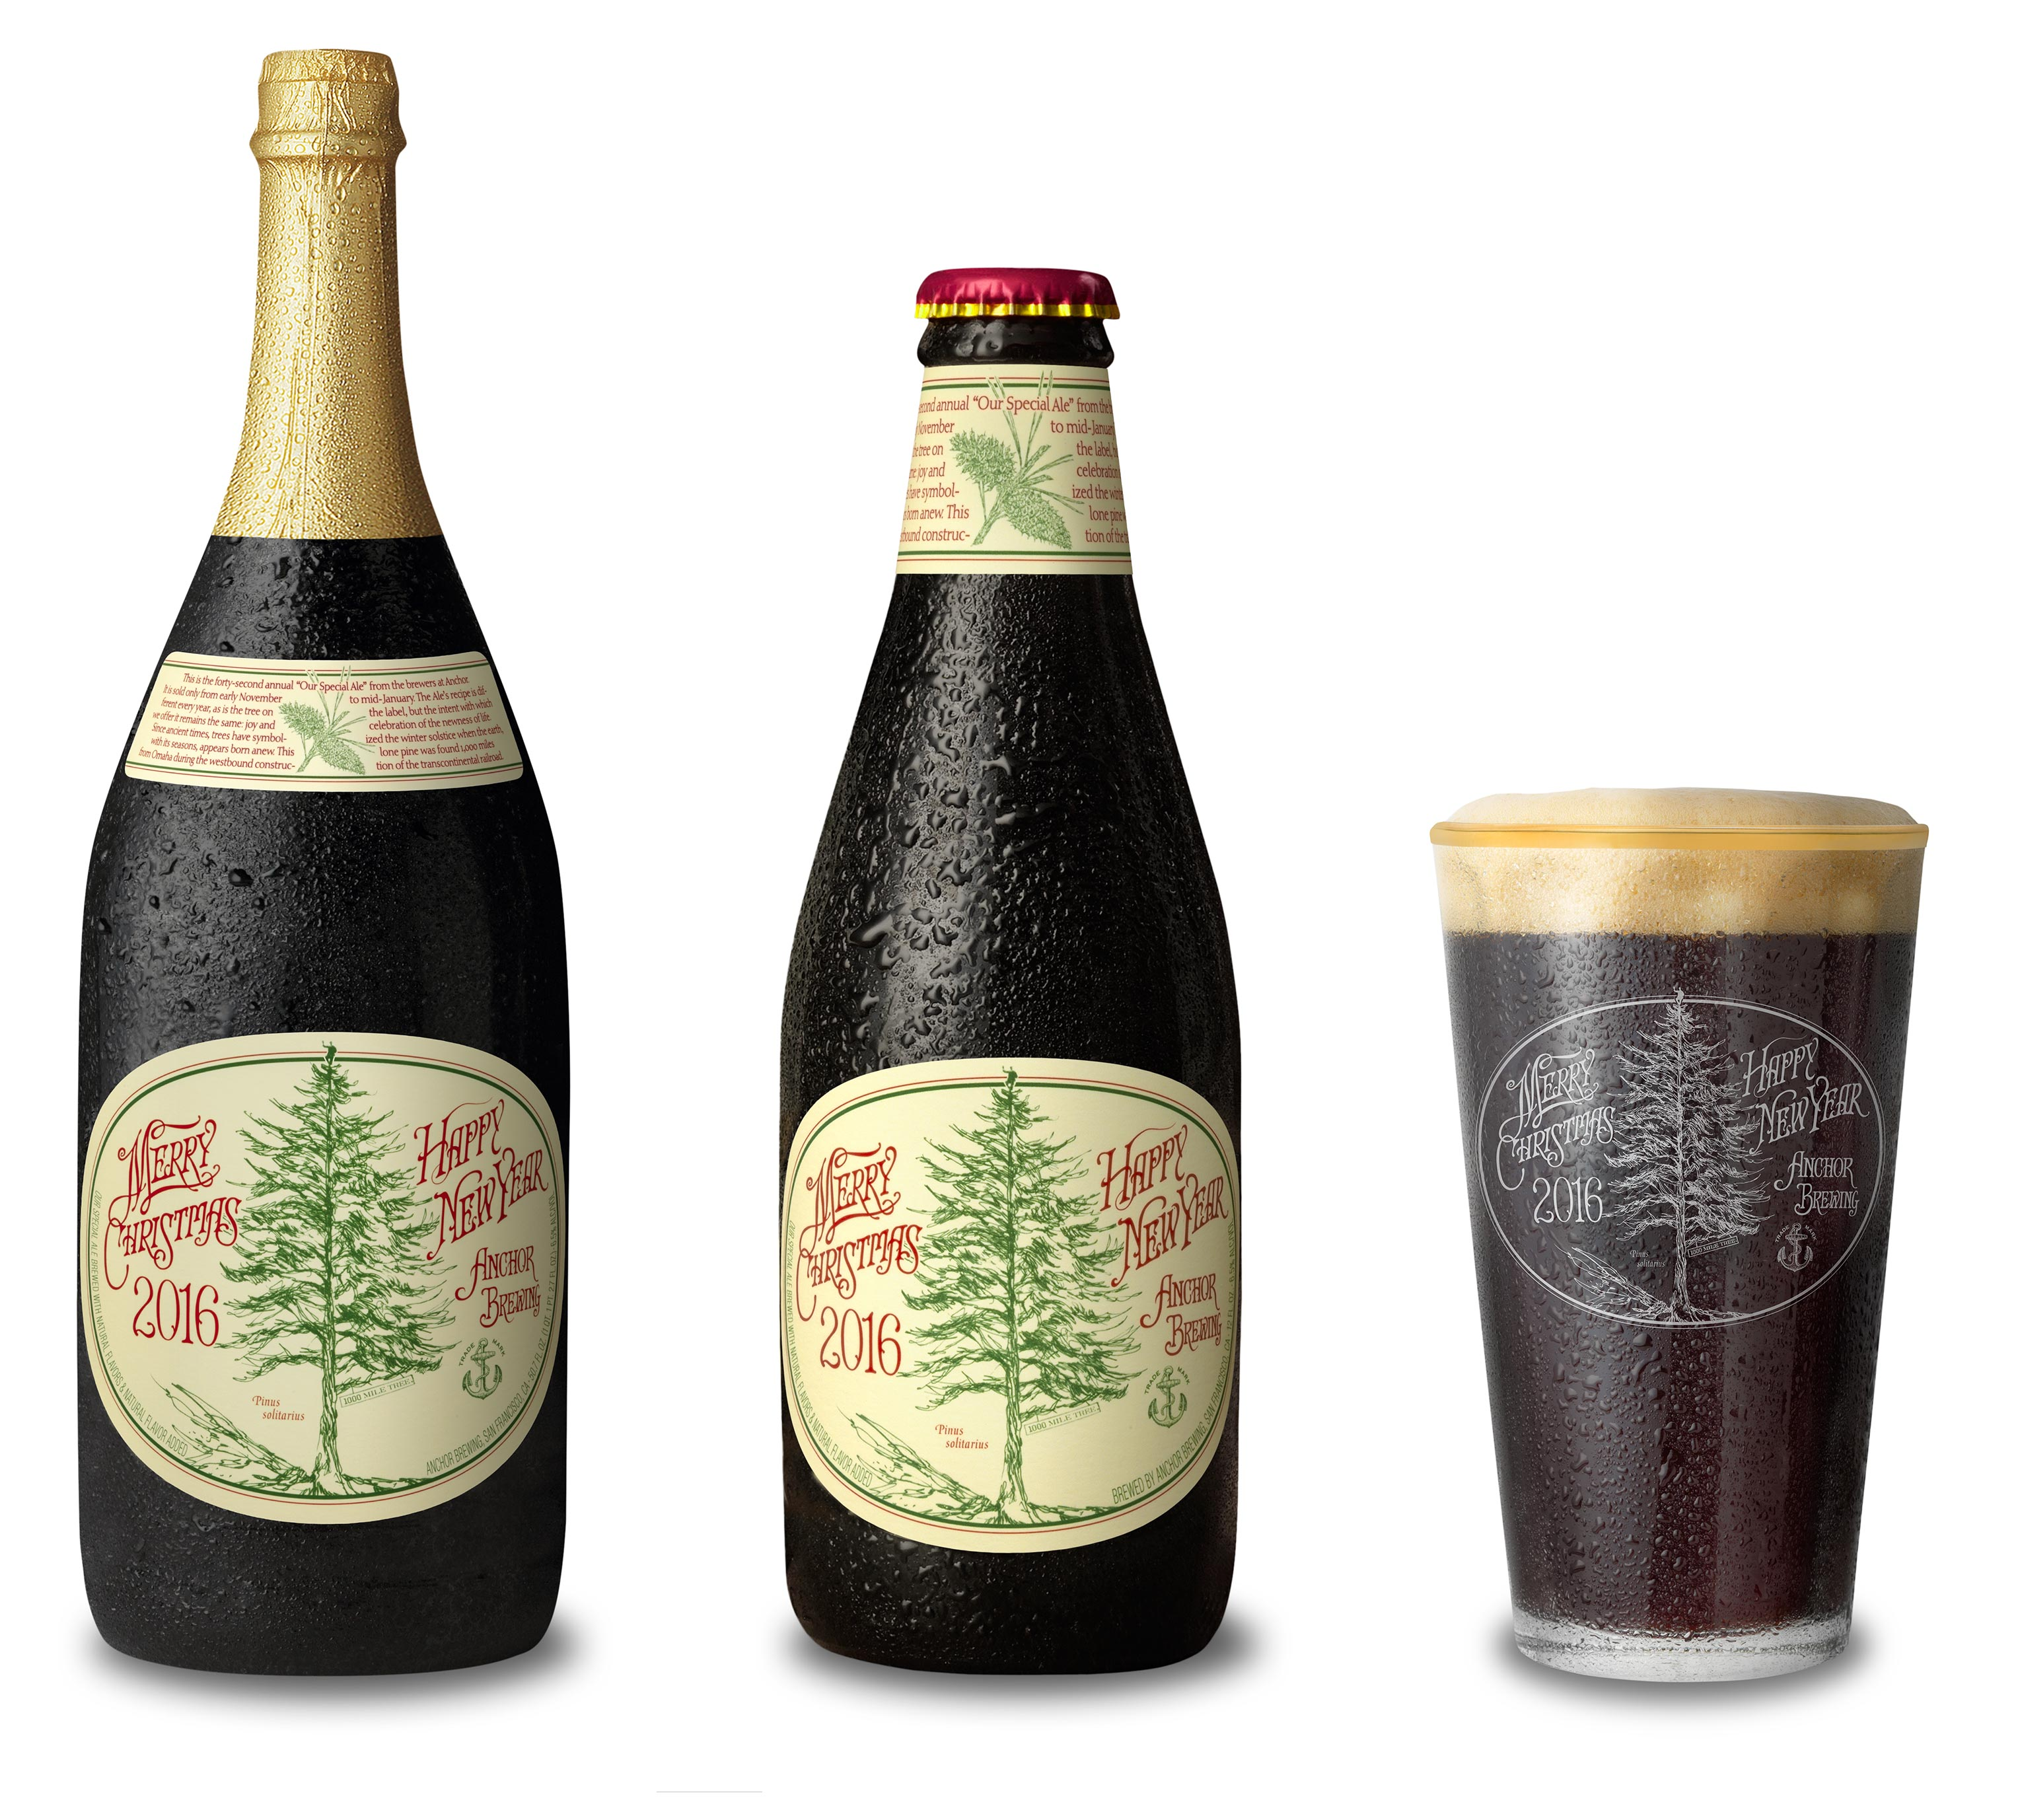 anchor brewing company 42nd annual christmas ale bottles and pint - Anchor Brewing Christmas Ale